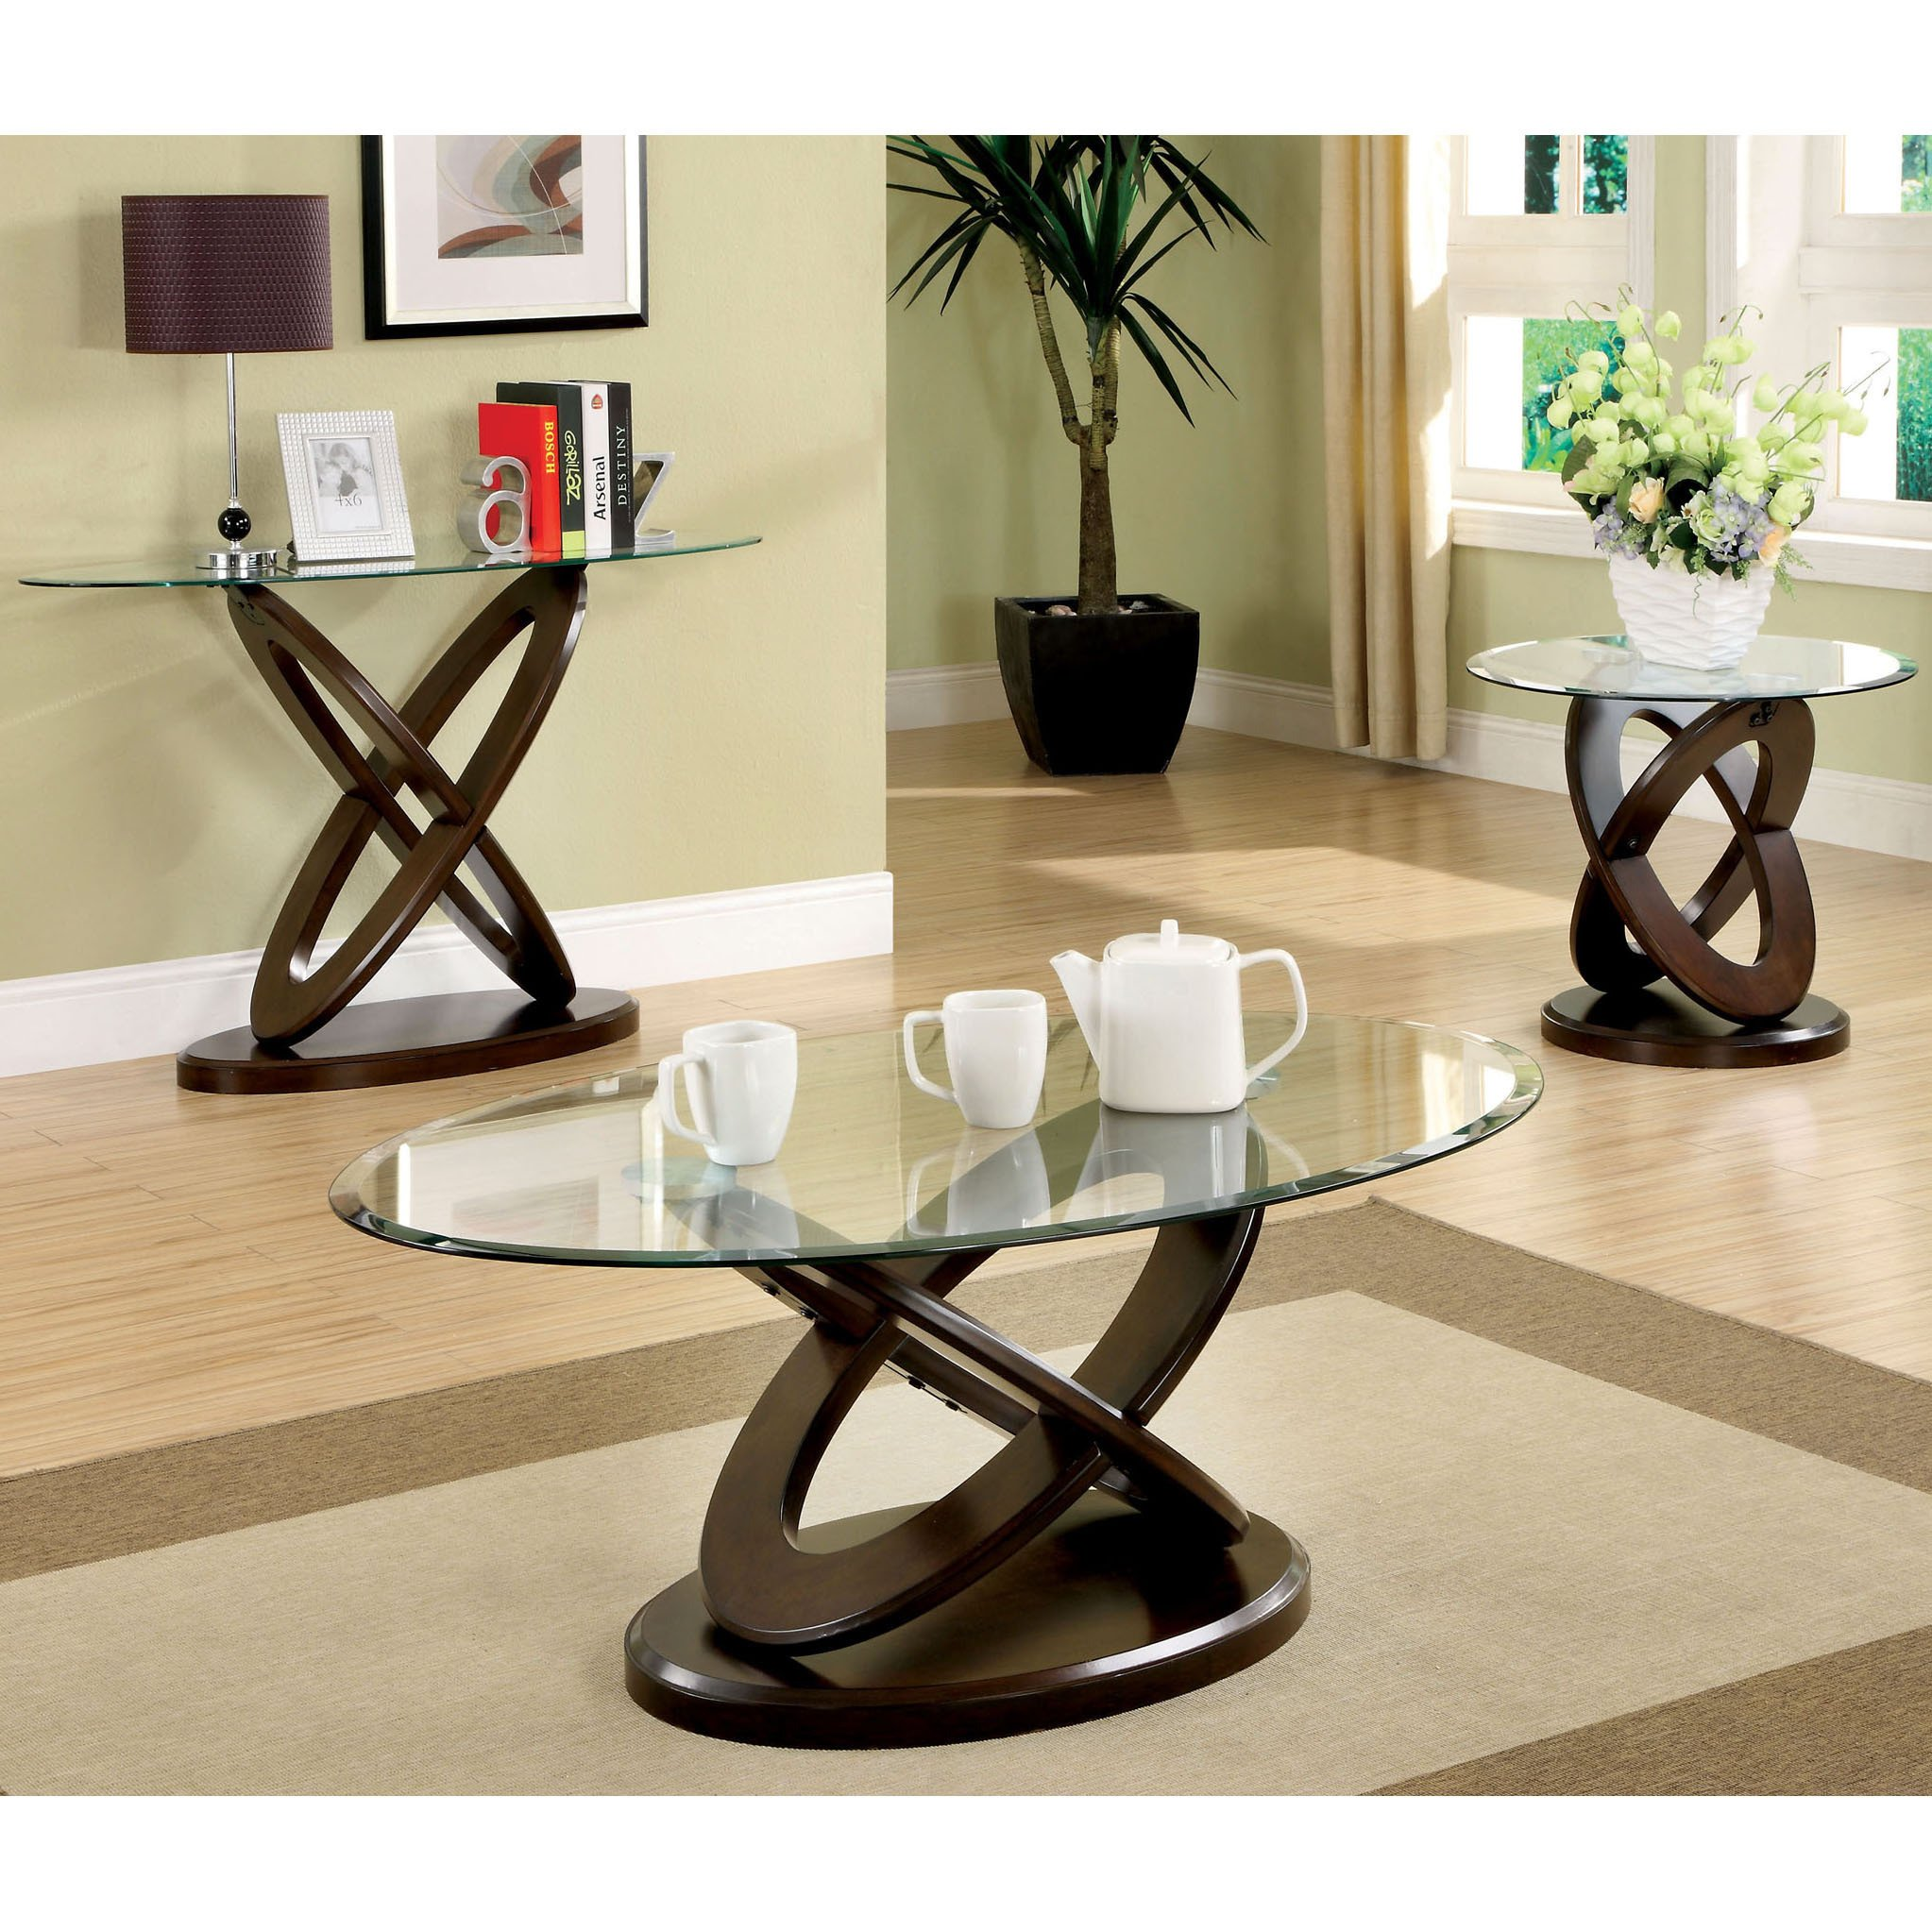 furniture america evalline piece dark walnut accent table set free shipping today beach style lamps outdoor bistro contemporary console tables student desk for bedroom round